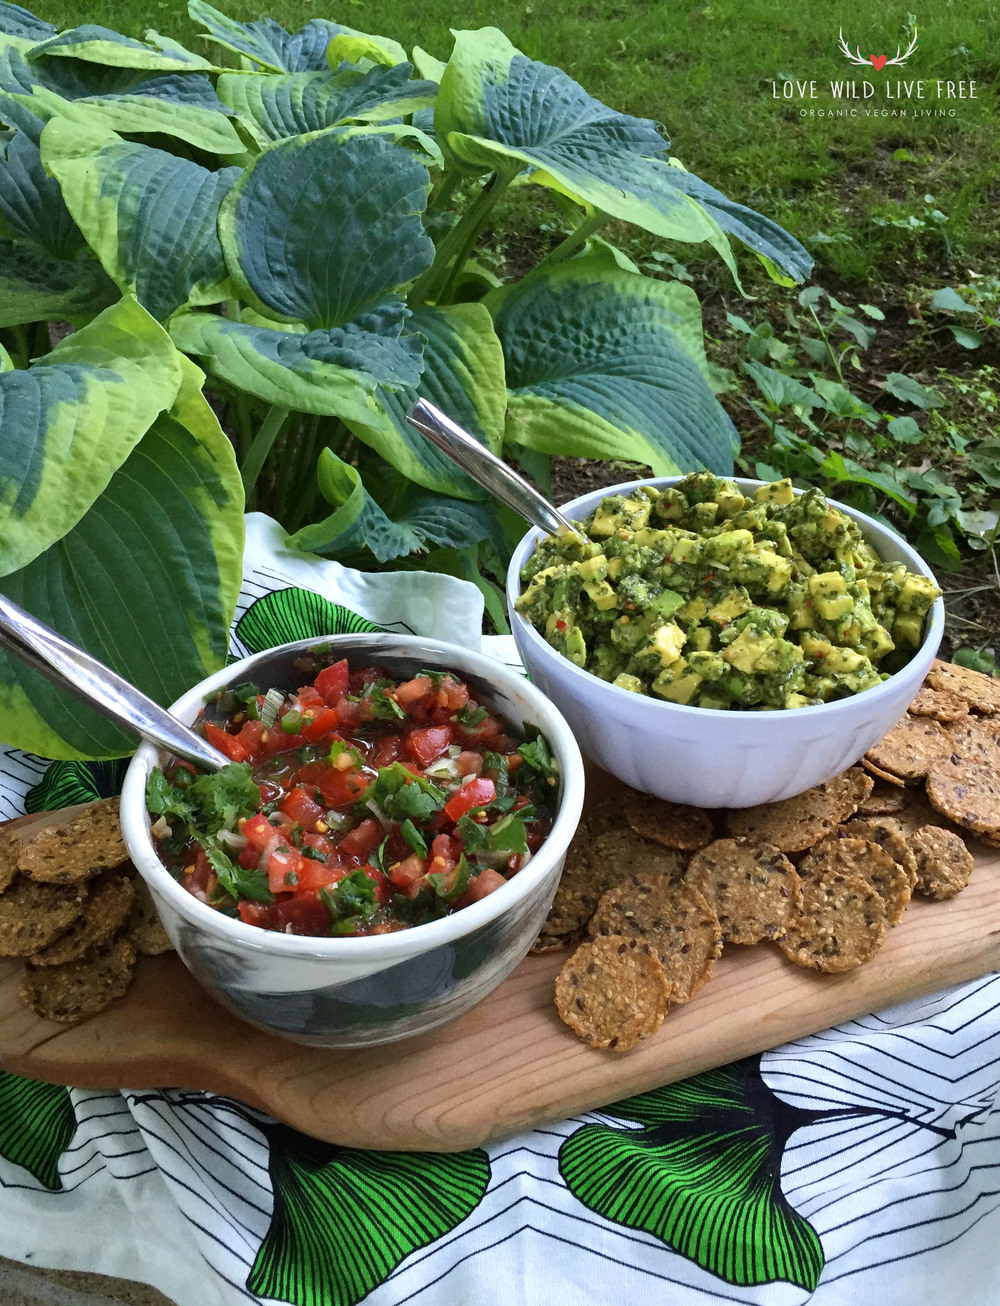 This Raw Vegan Avocado Chimi from Unbaked Cake Co. pairs nicely with my Fresh and Raw Tomato Salsa! Get the recipe here. Photo by Love Wild Live Free.